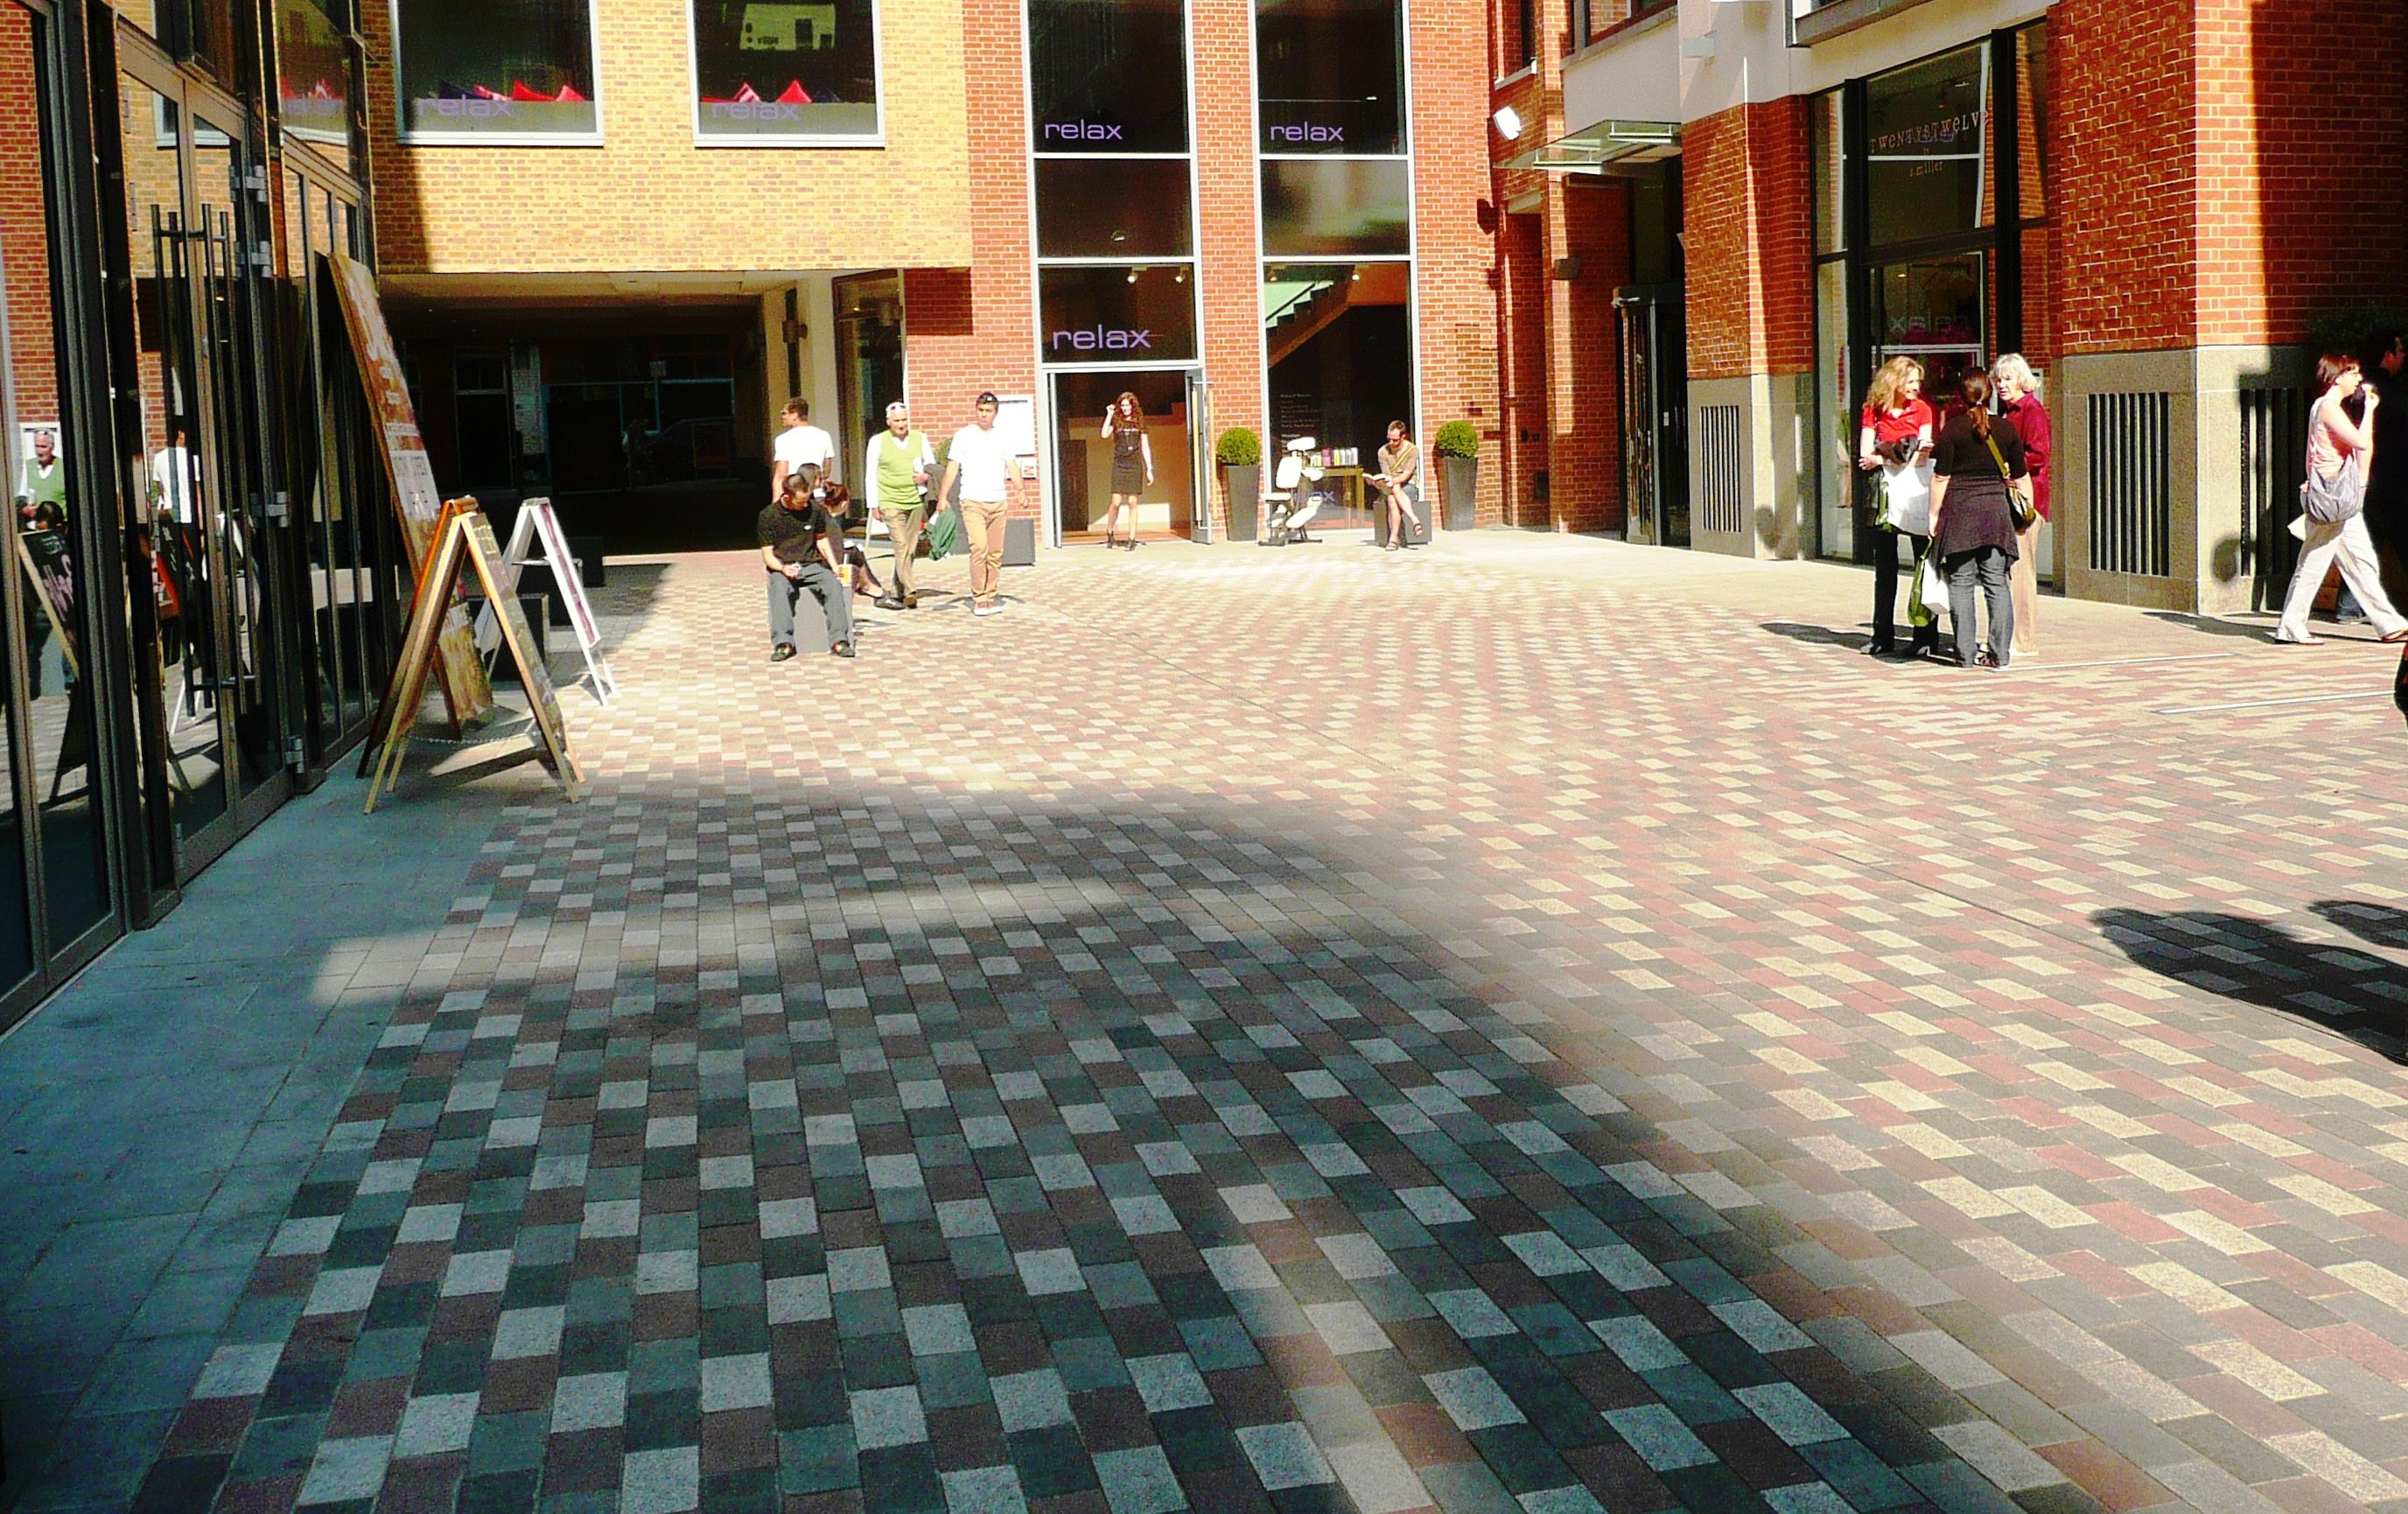 St Martin's Courtyard, Upper St Martin's Lane. Shaftesbury PLC and The Mercers' Company used multi-coloured dressed setts in their joint development.